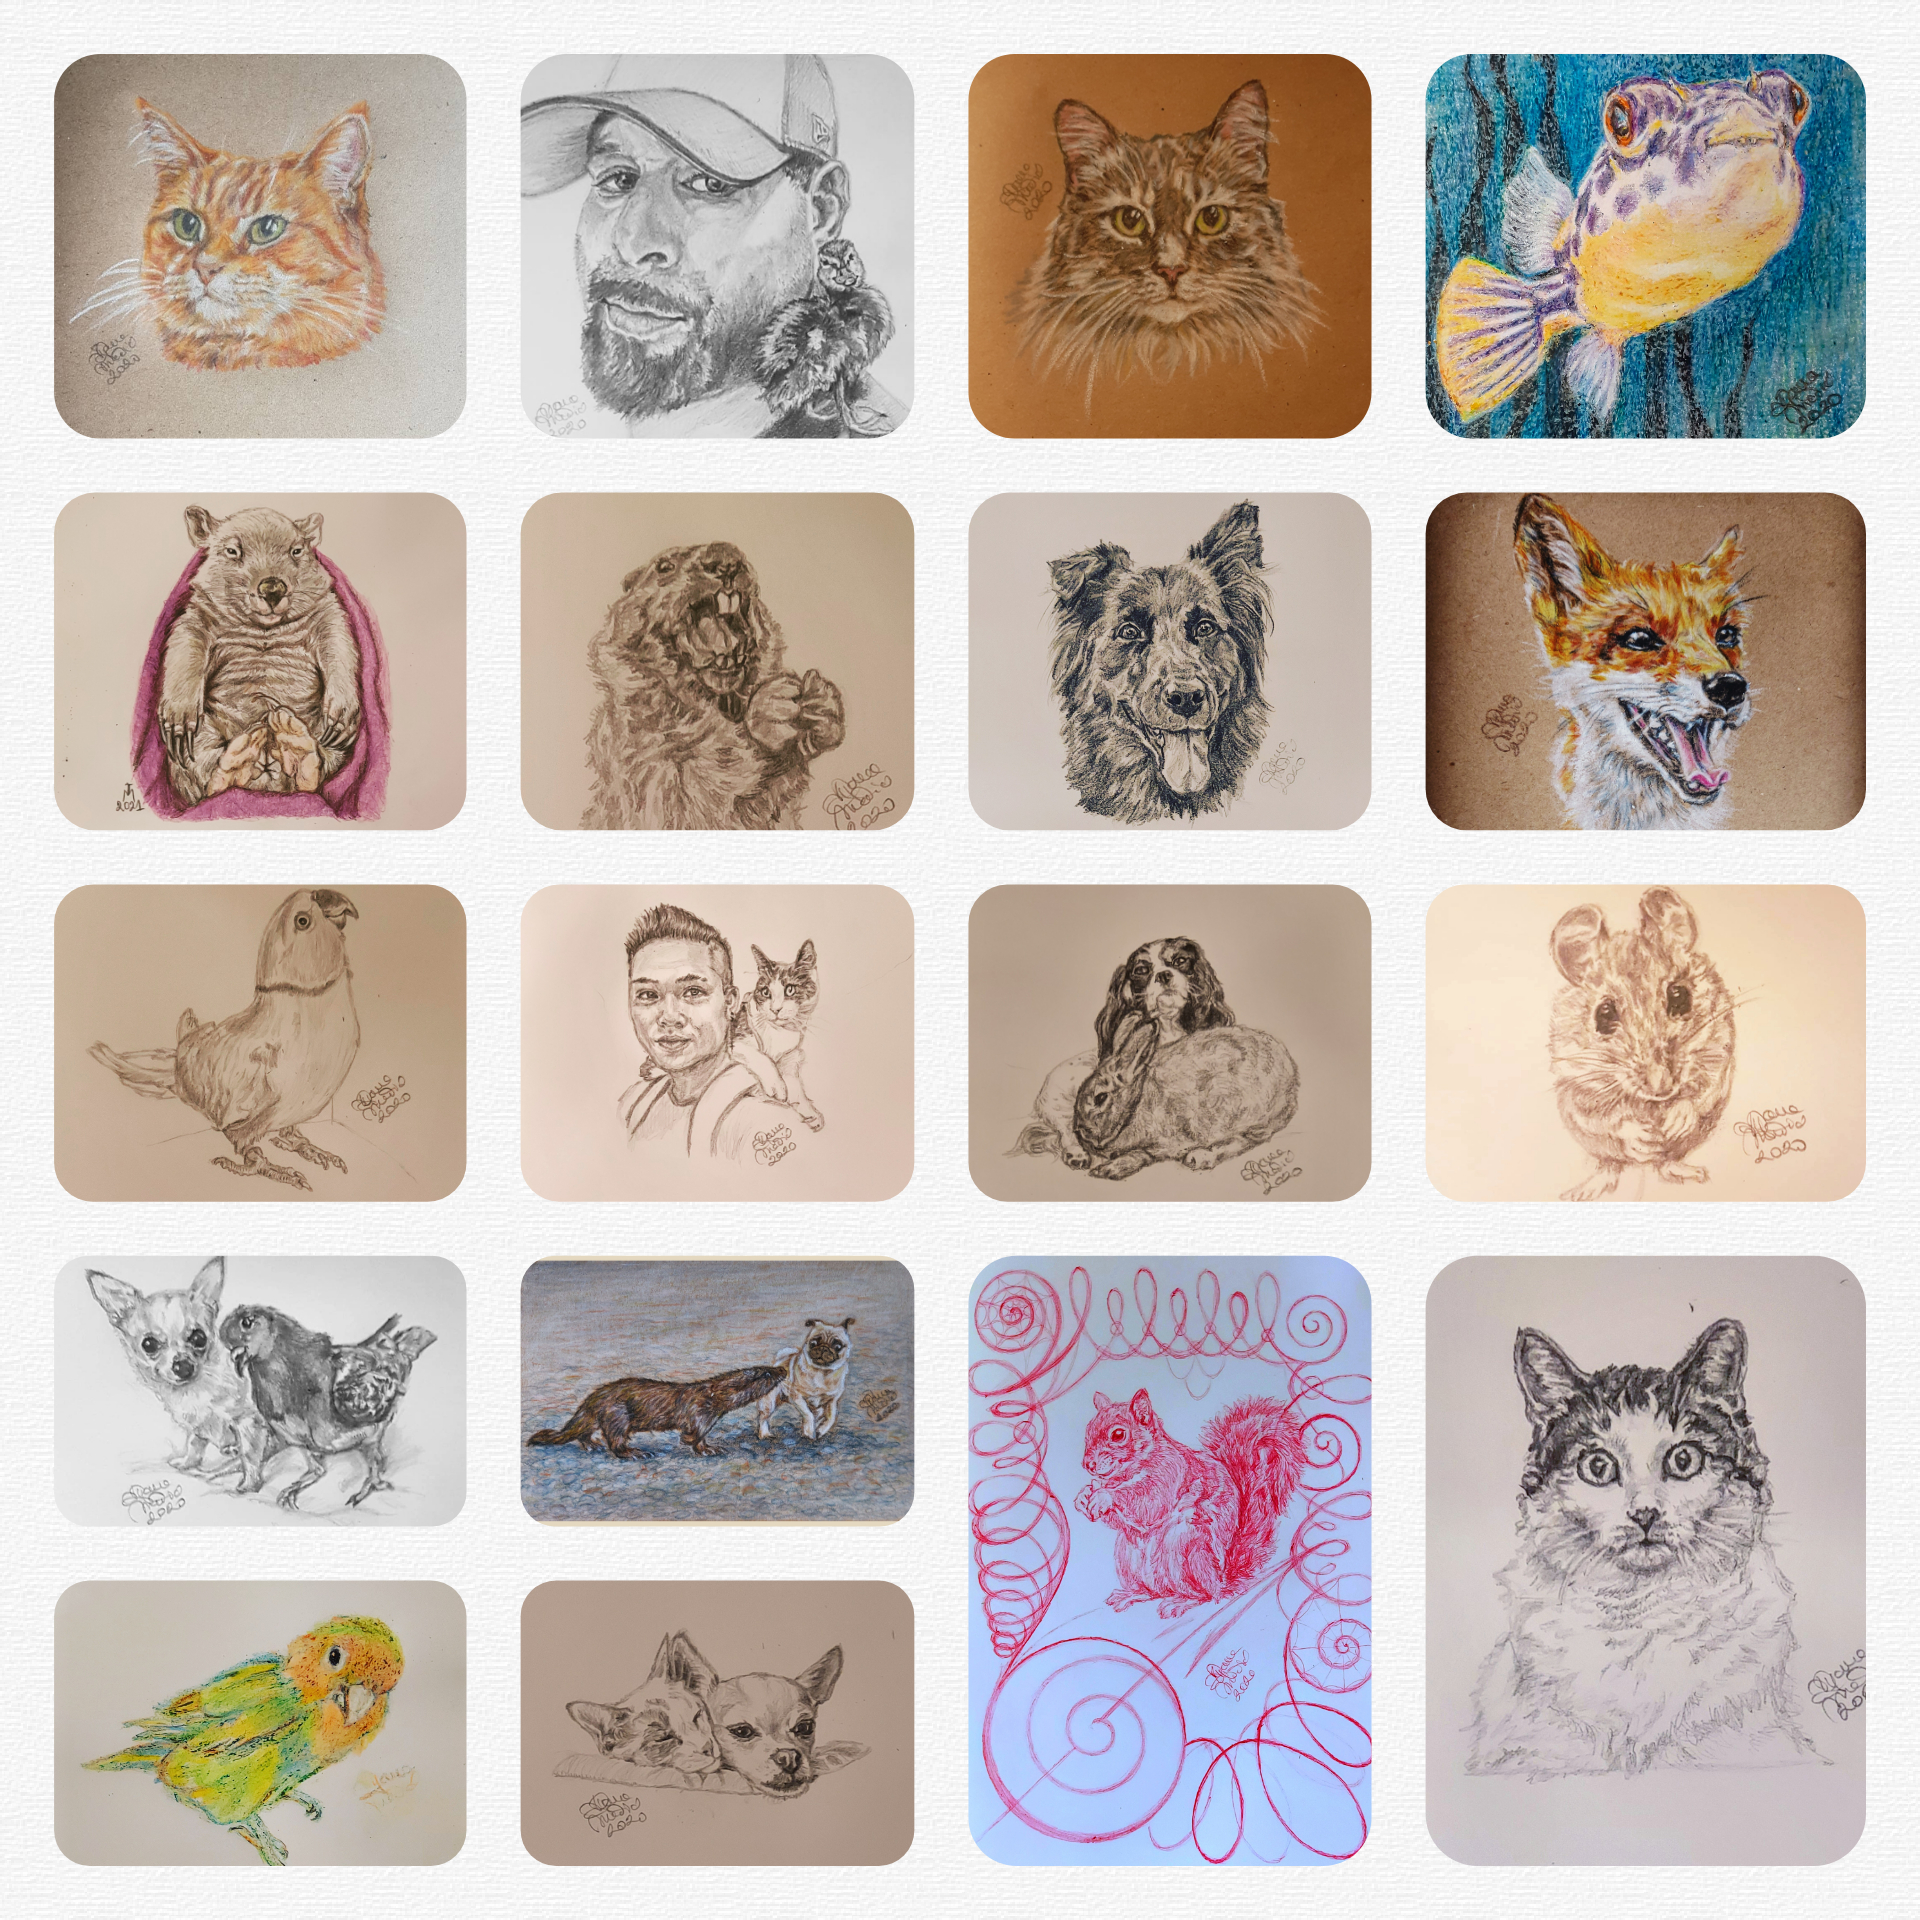 This Year's Batch Of Drawings Of Inspiring Animal Influencers